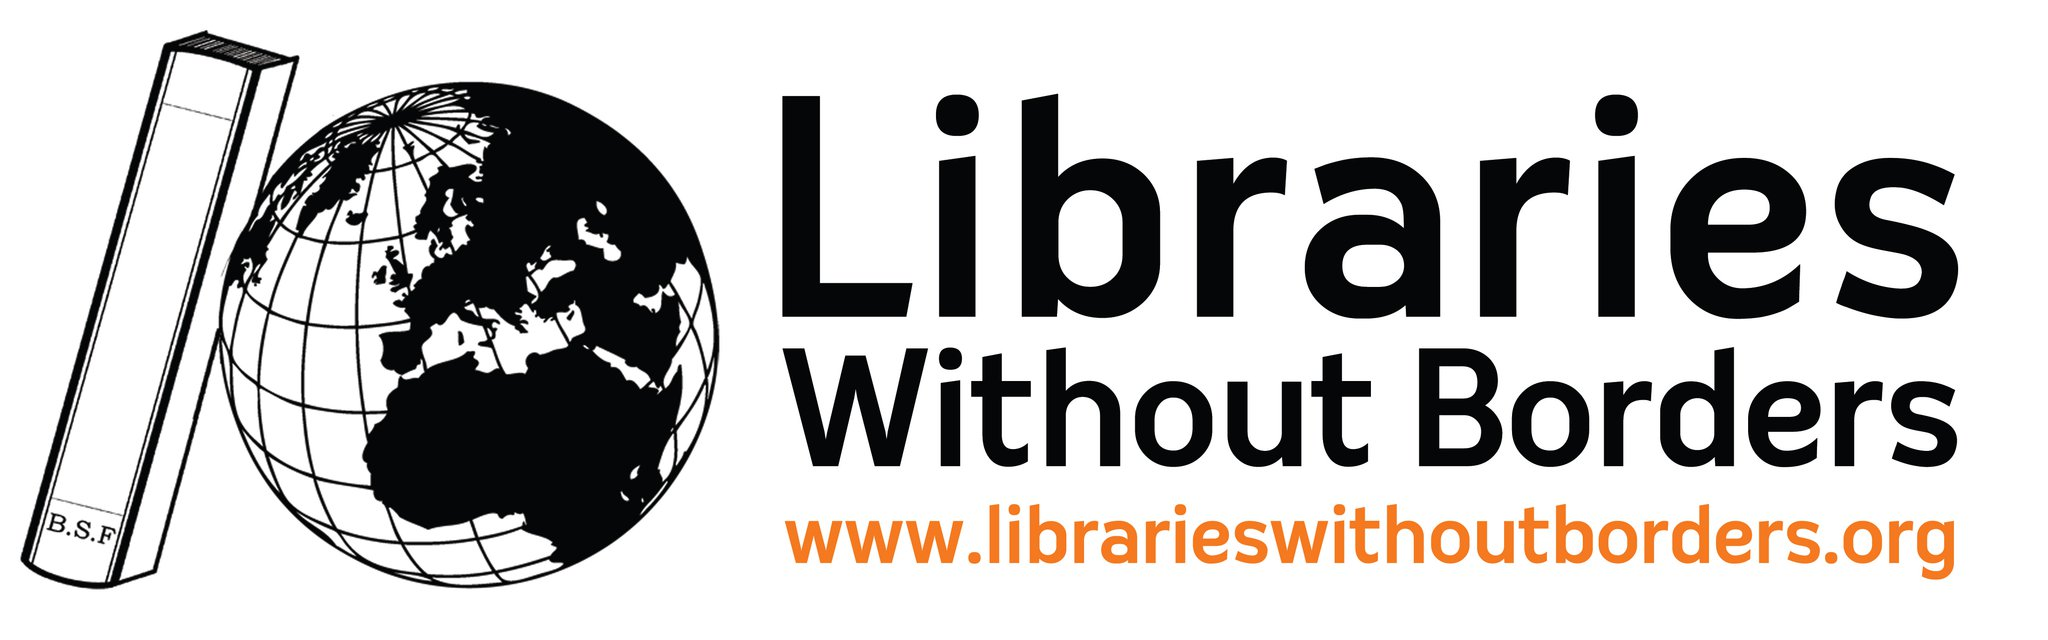 Libraries Without Borders Logo.jpg